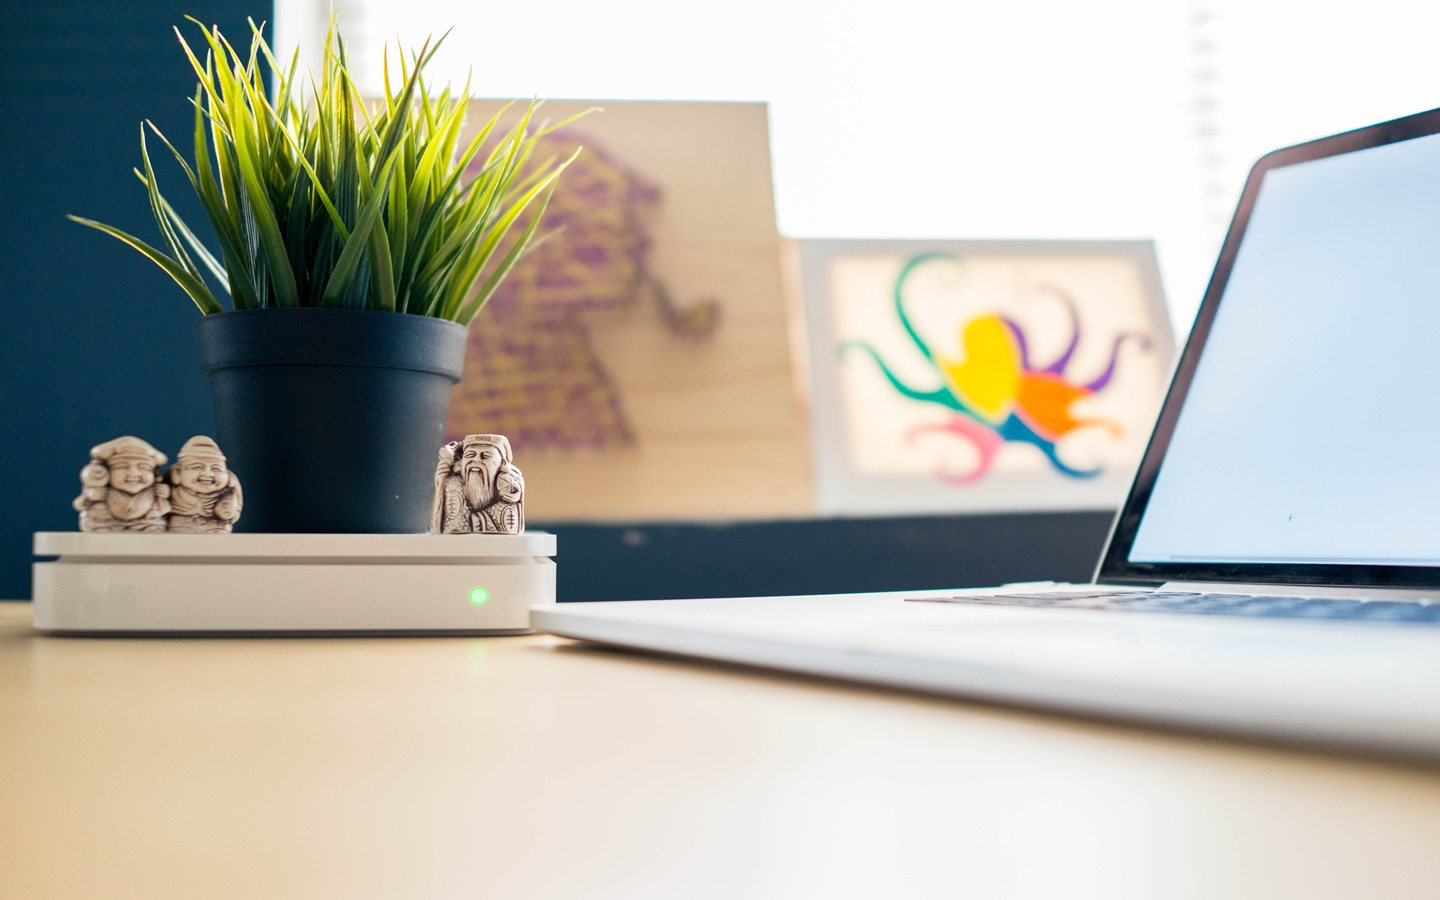 Plants can be a great workspace decoration item to increase productivity